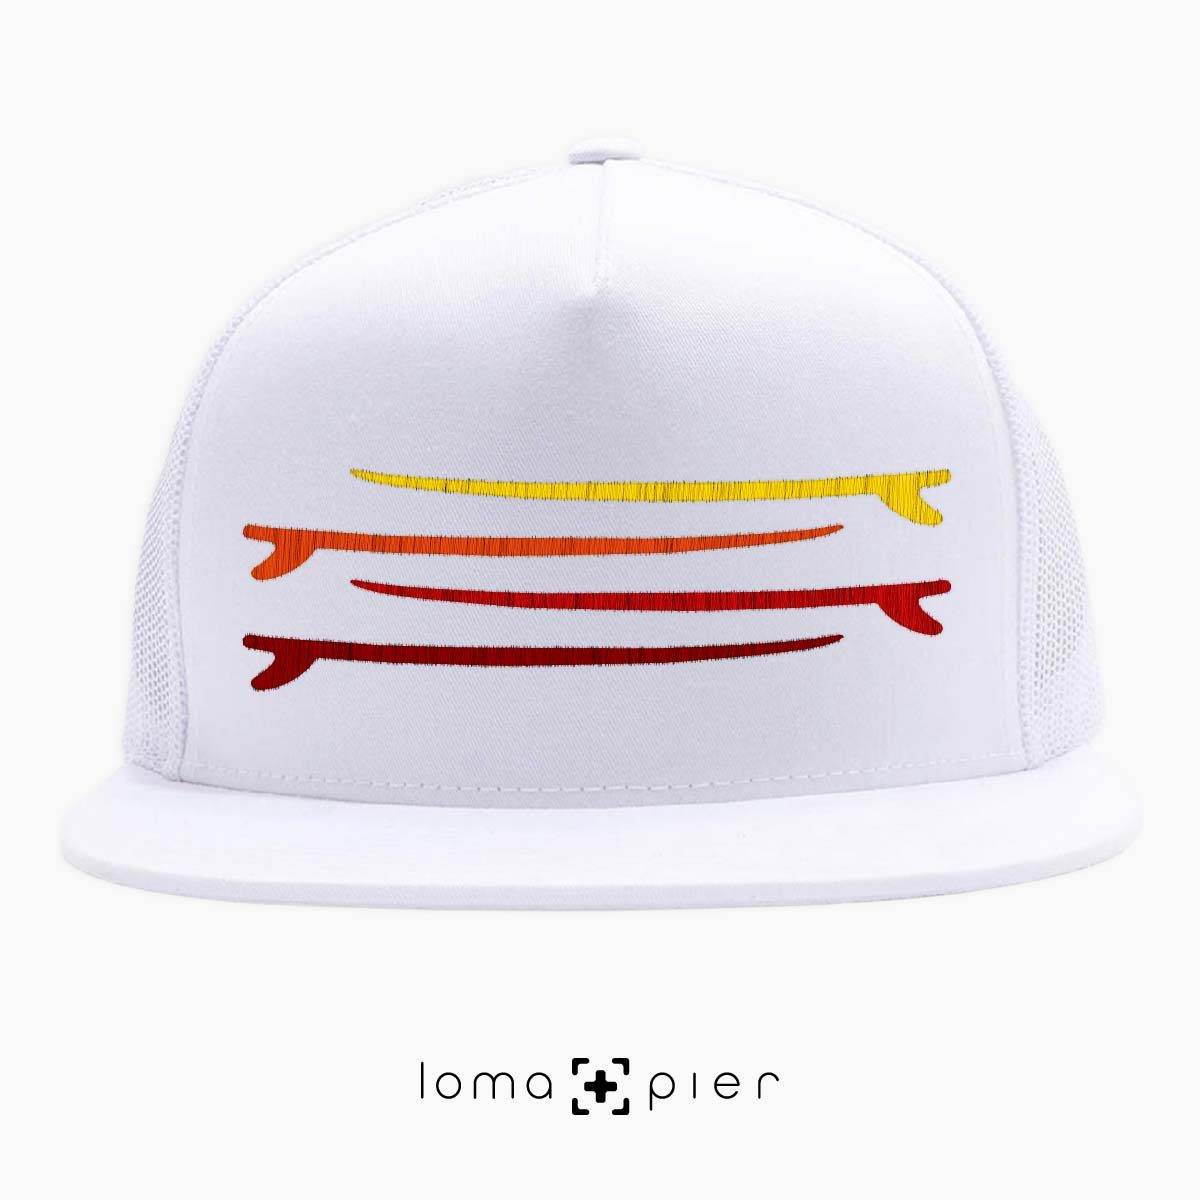 SURF STACK manhattan beach netback trucker hat in white by loma+pier hat store